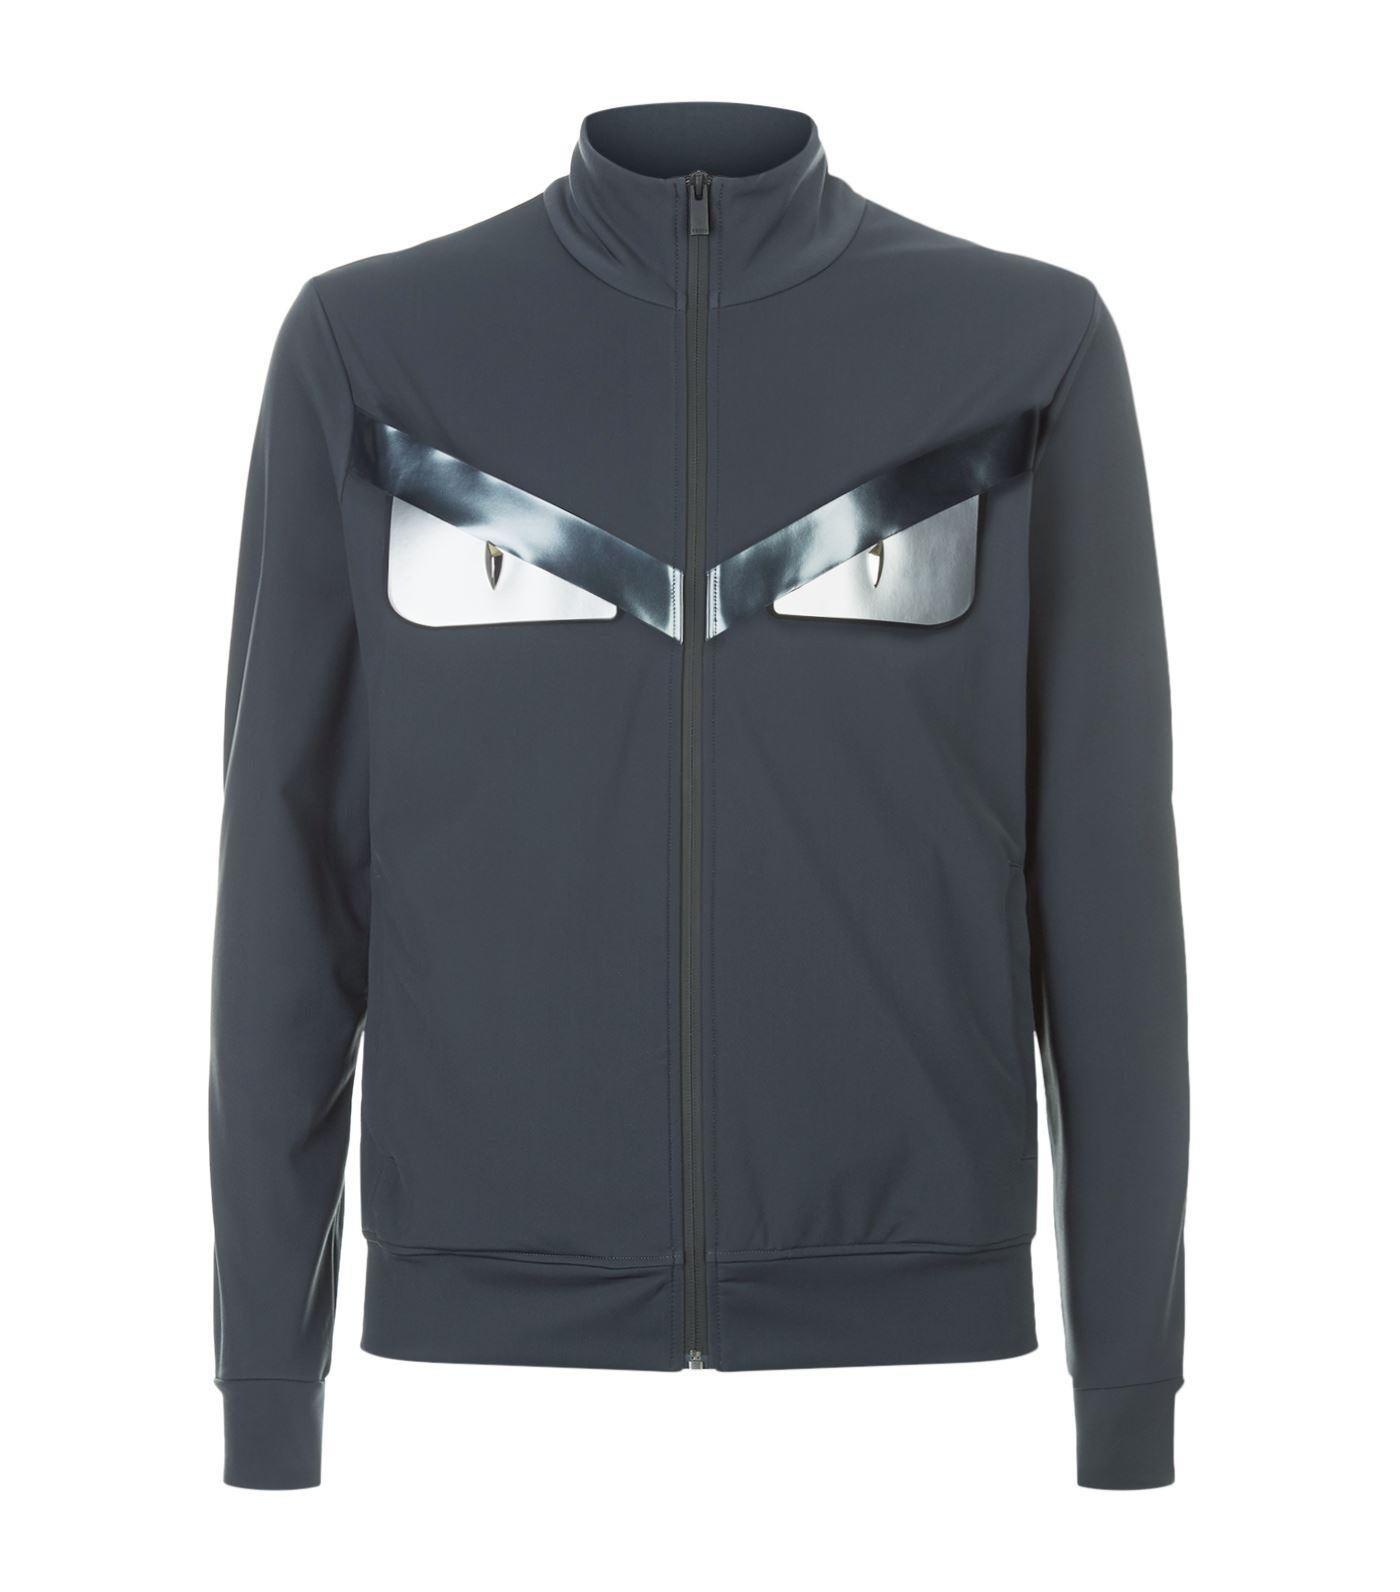 Fendi Technical Zip Up Sweater, Grey, It 54